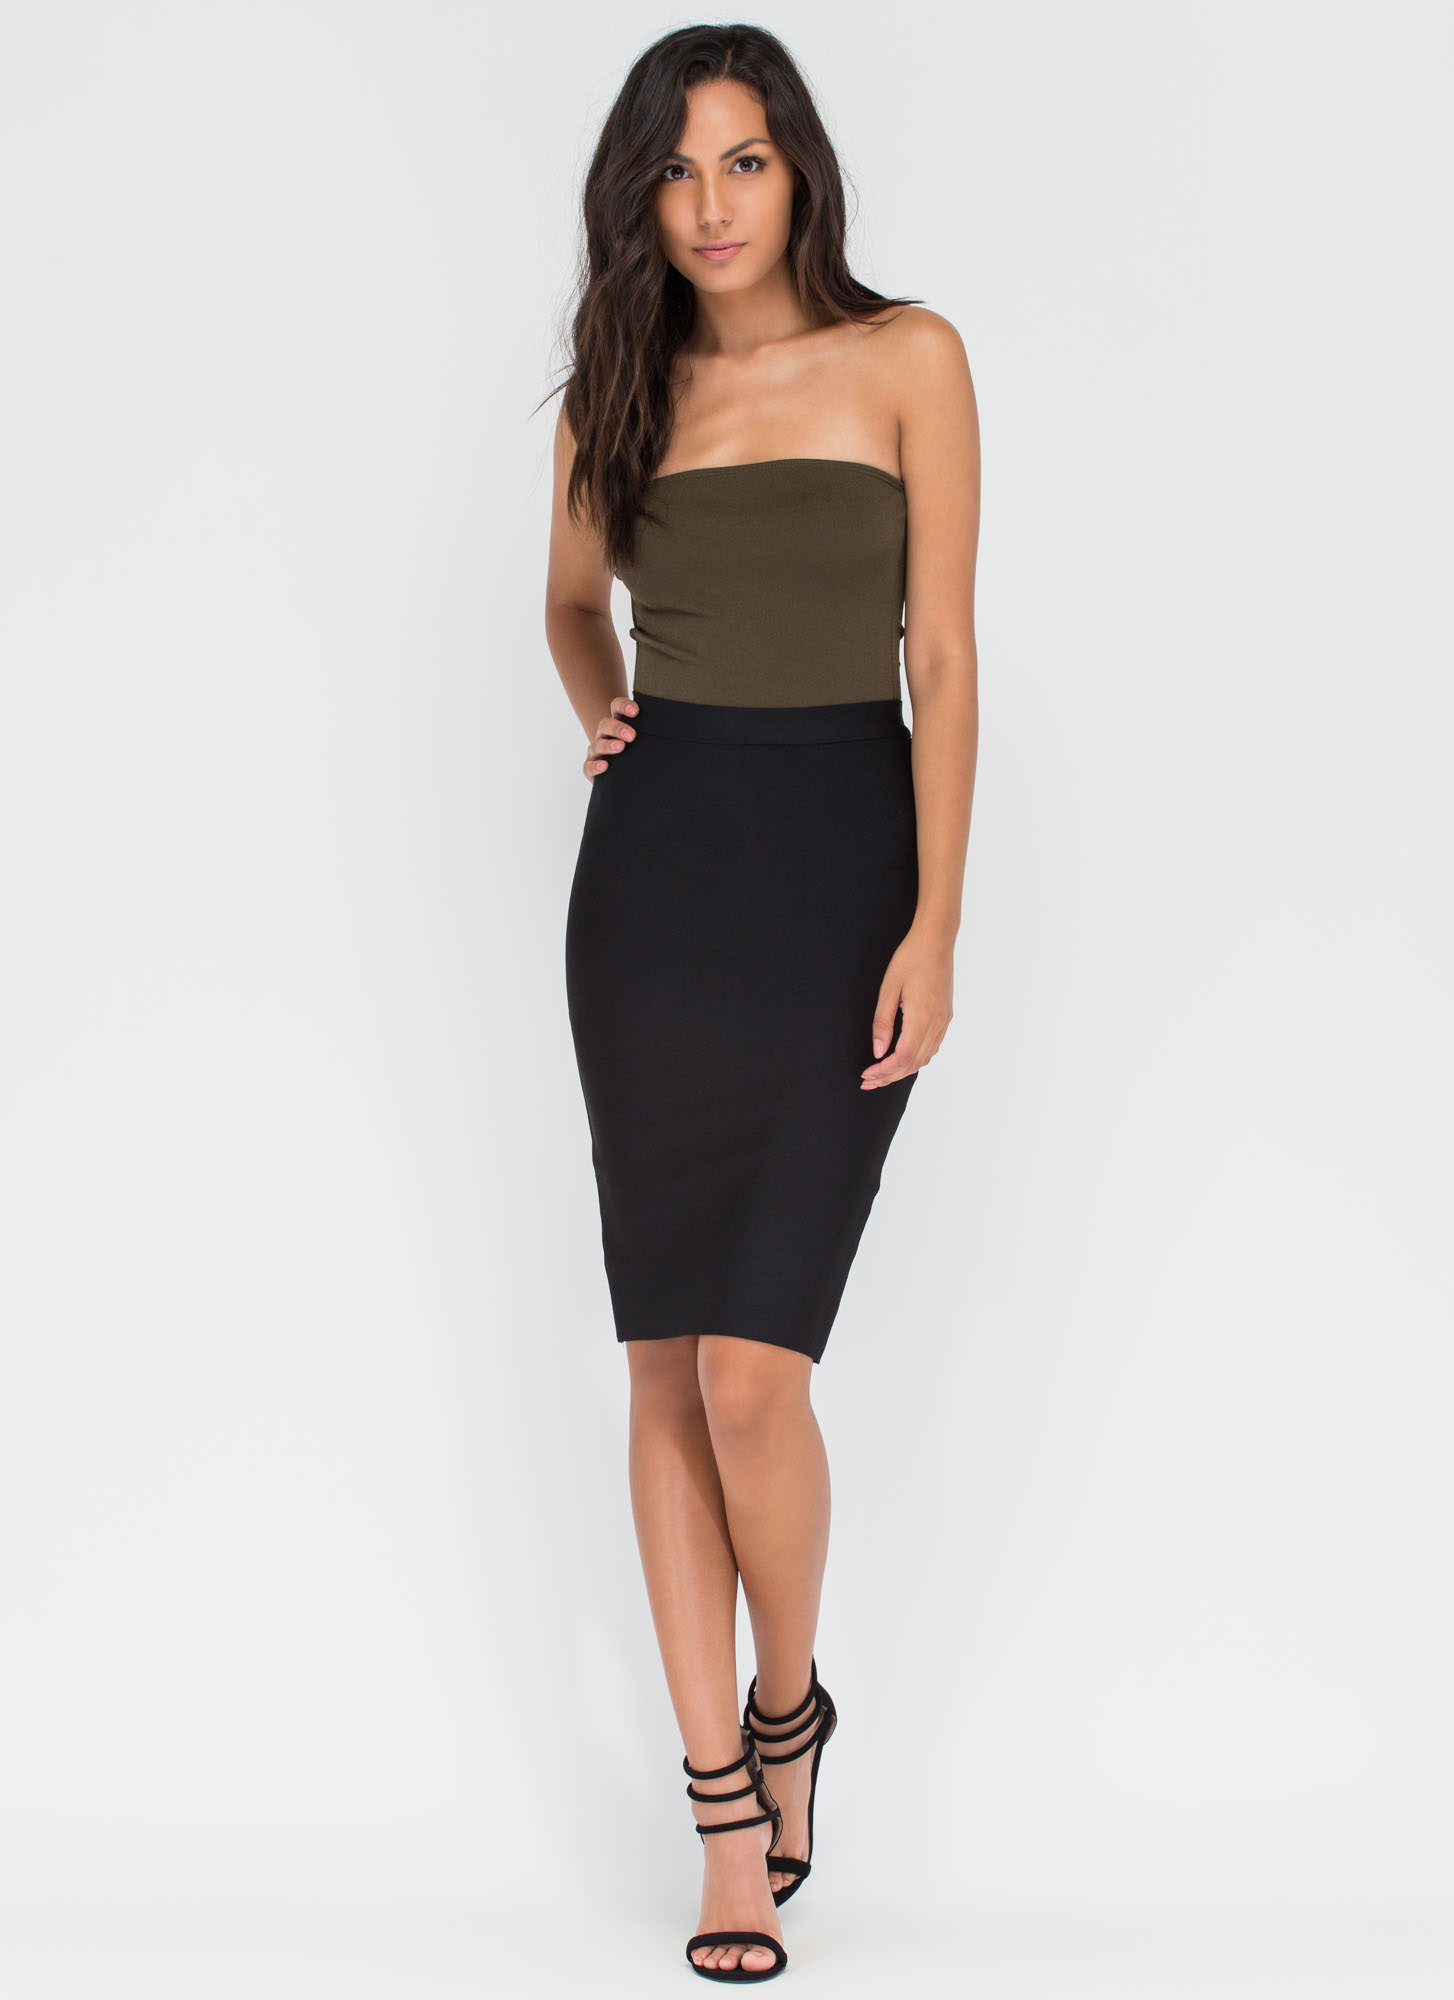 Strategic Move Cut-Out Bodysuit OLIVE